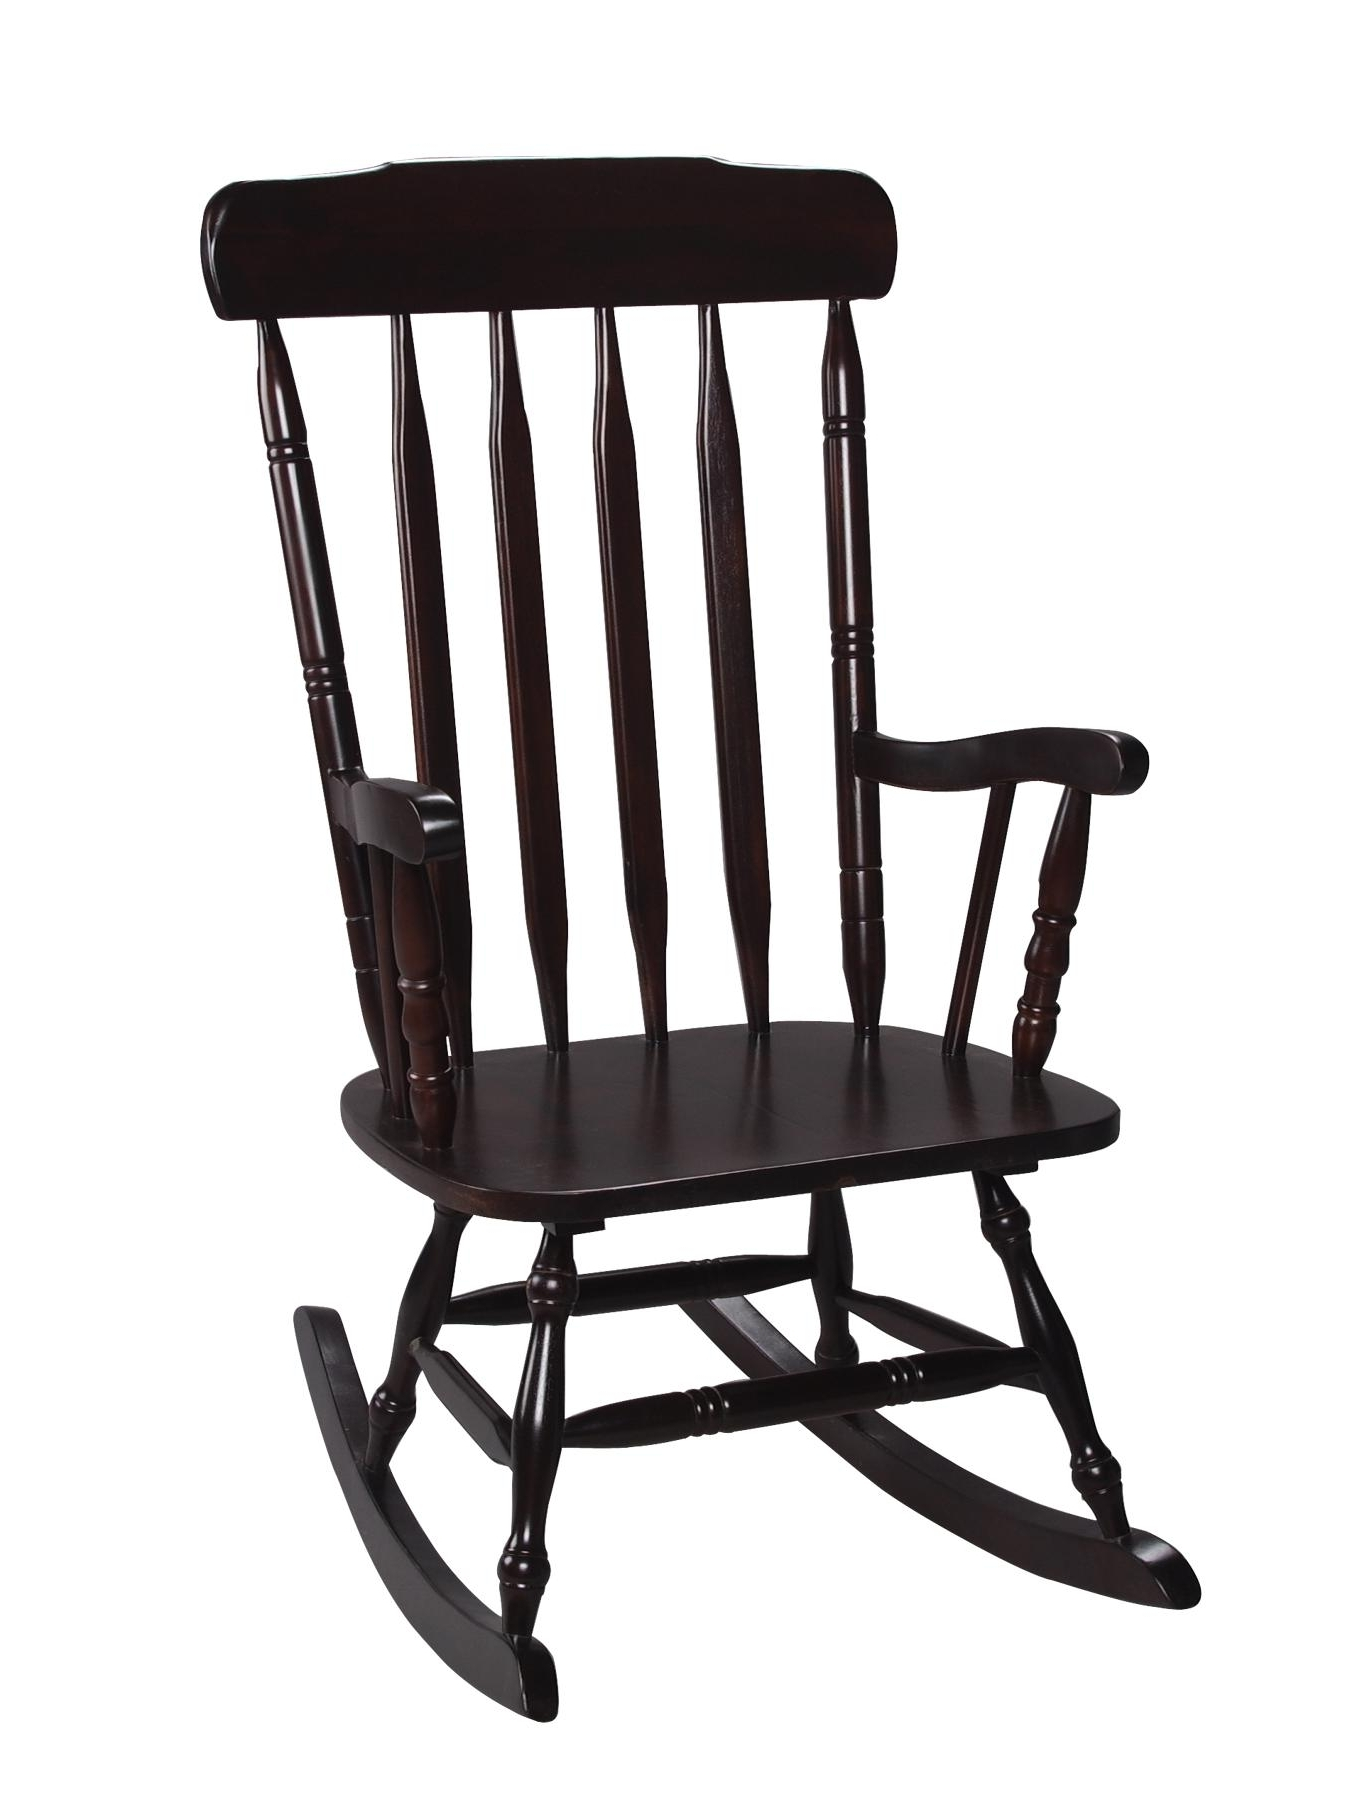 Preferred Surprising Black Rocking Chair On Famous Chair Designs With With Black Rocking Chairs (View 16 of 20)